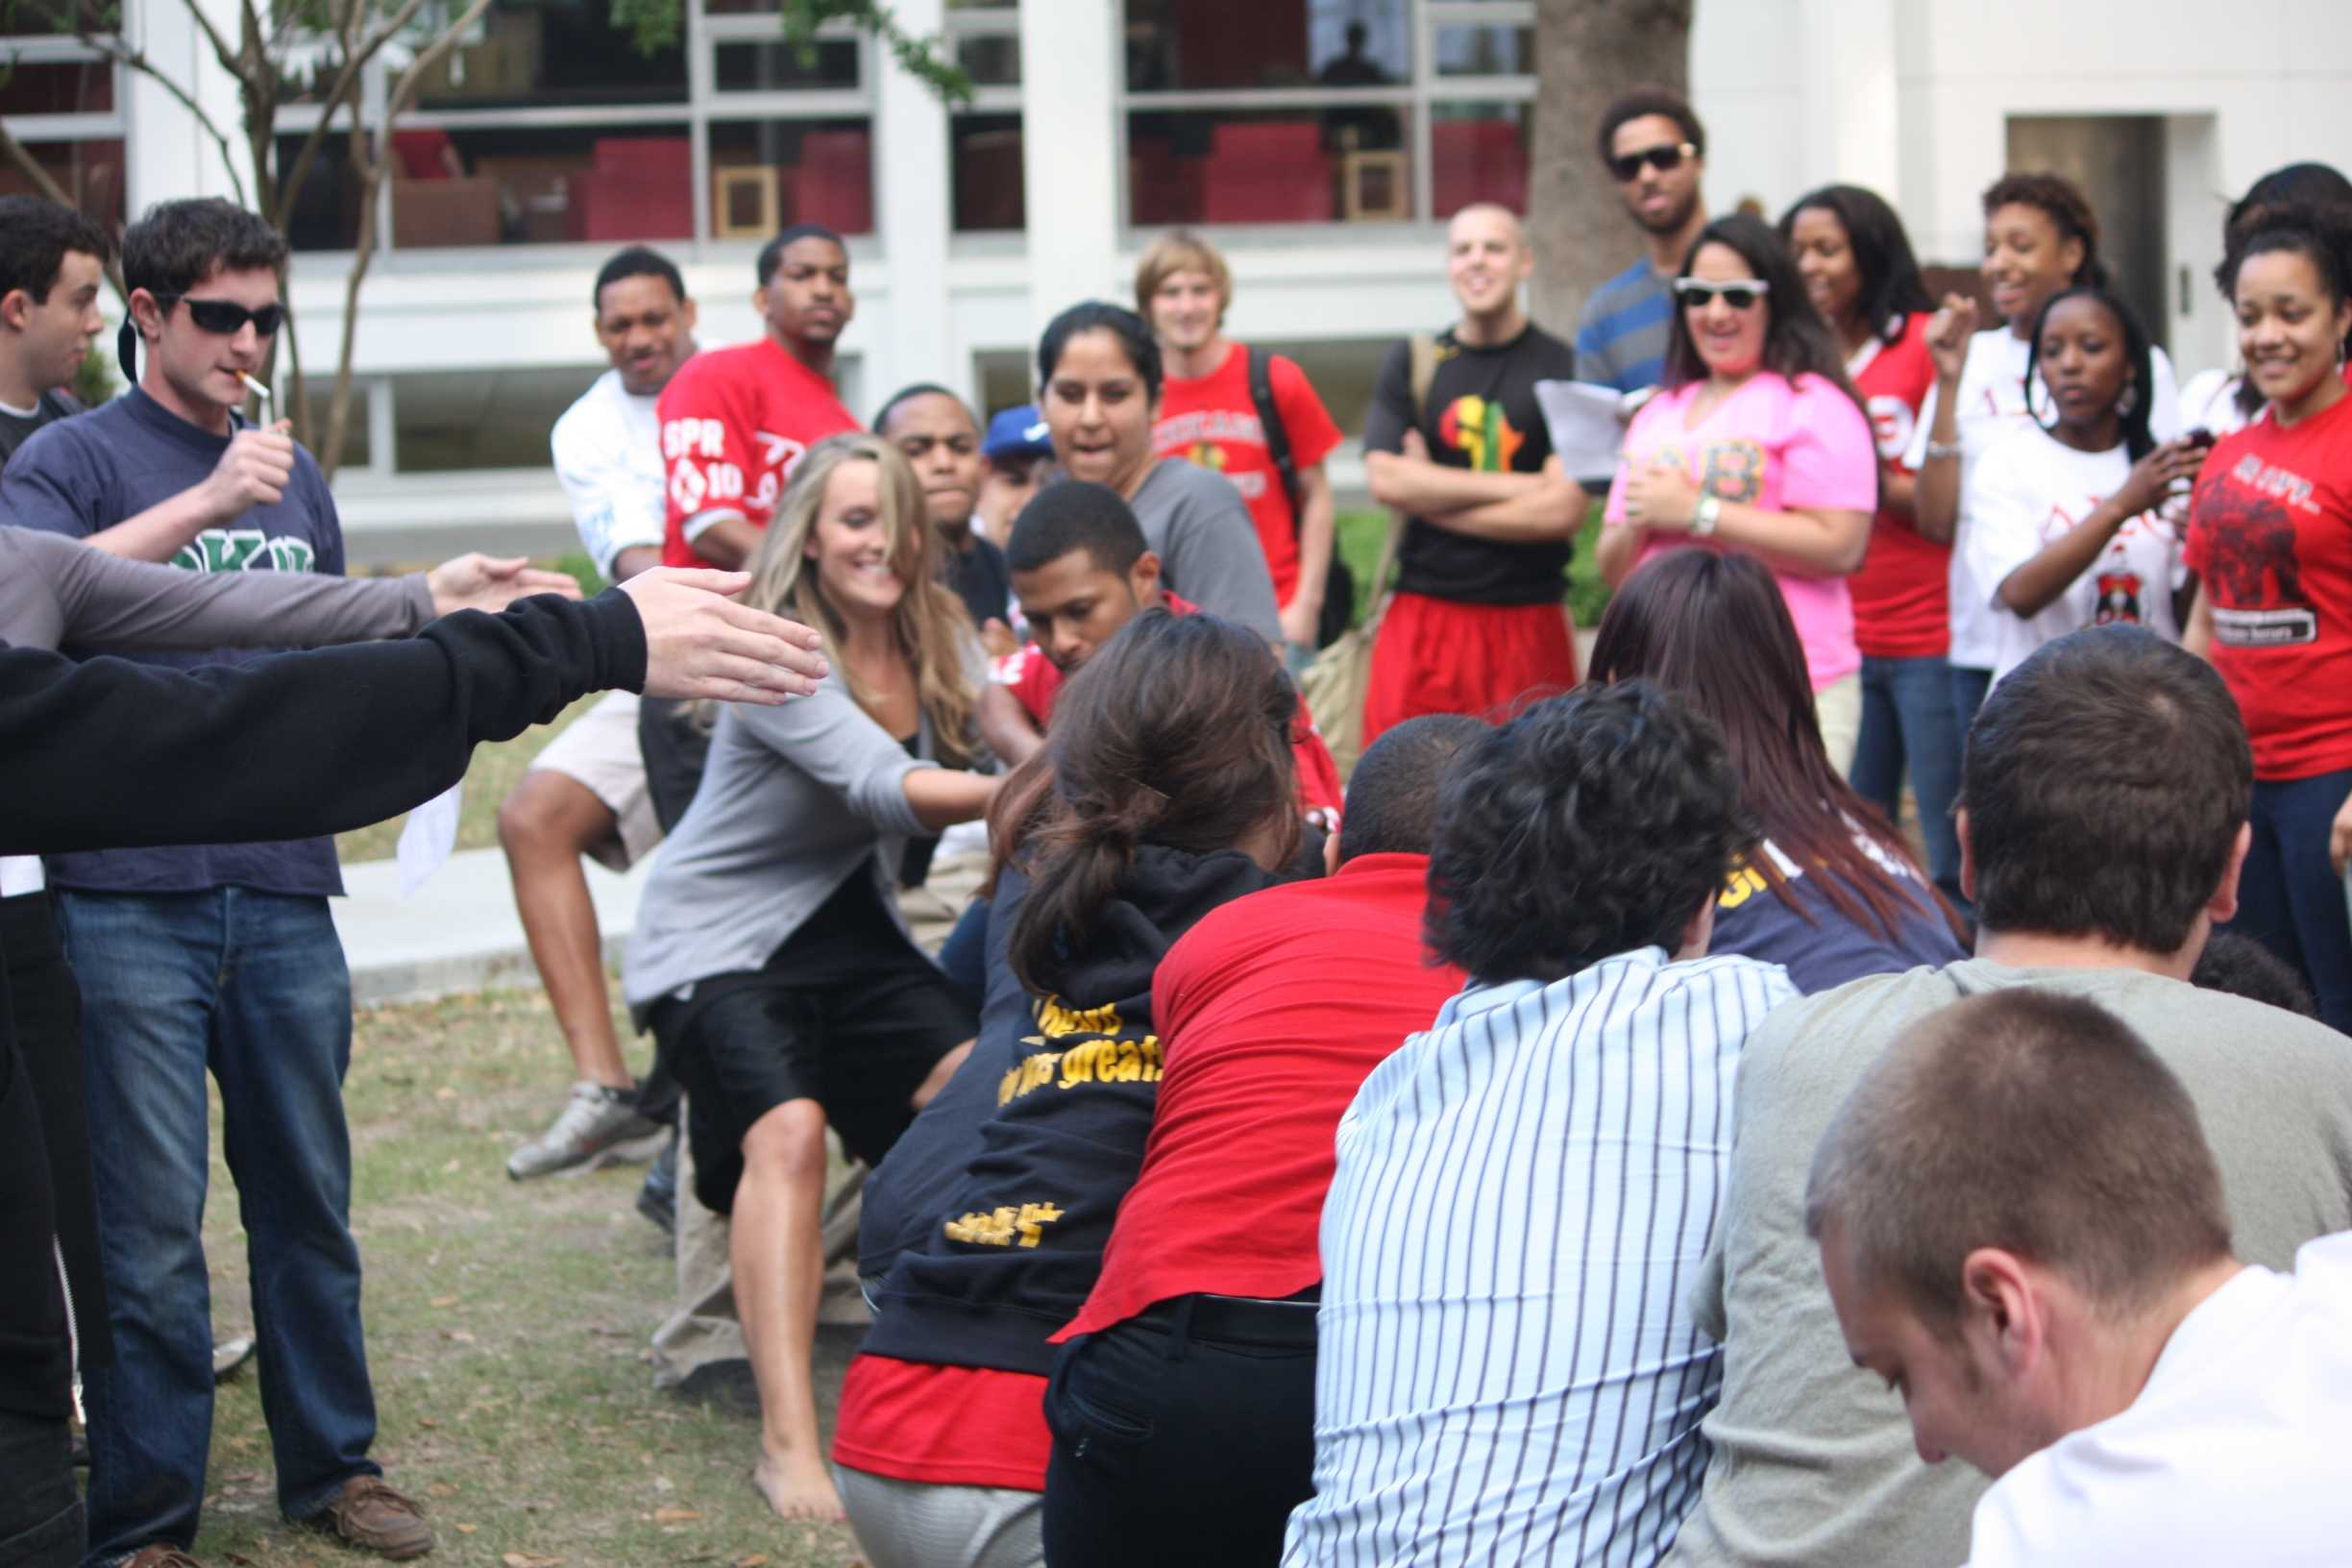 Members of all Loyola fraternities and sororities partcipate in a tug of war at this year's Greek Week. Greek Weeks ends with field day events.